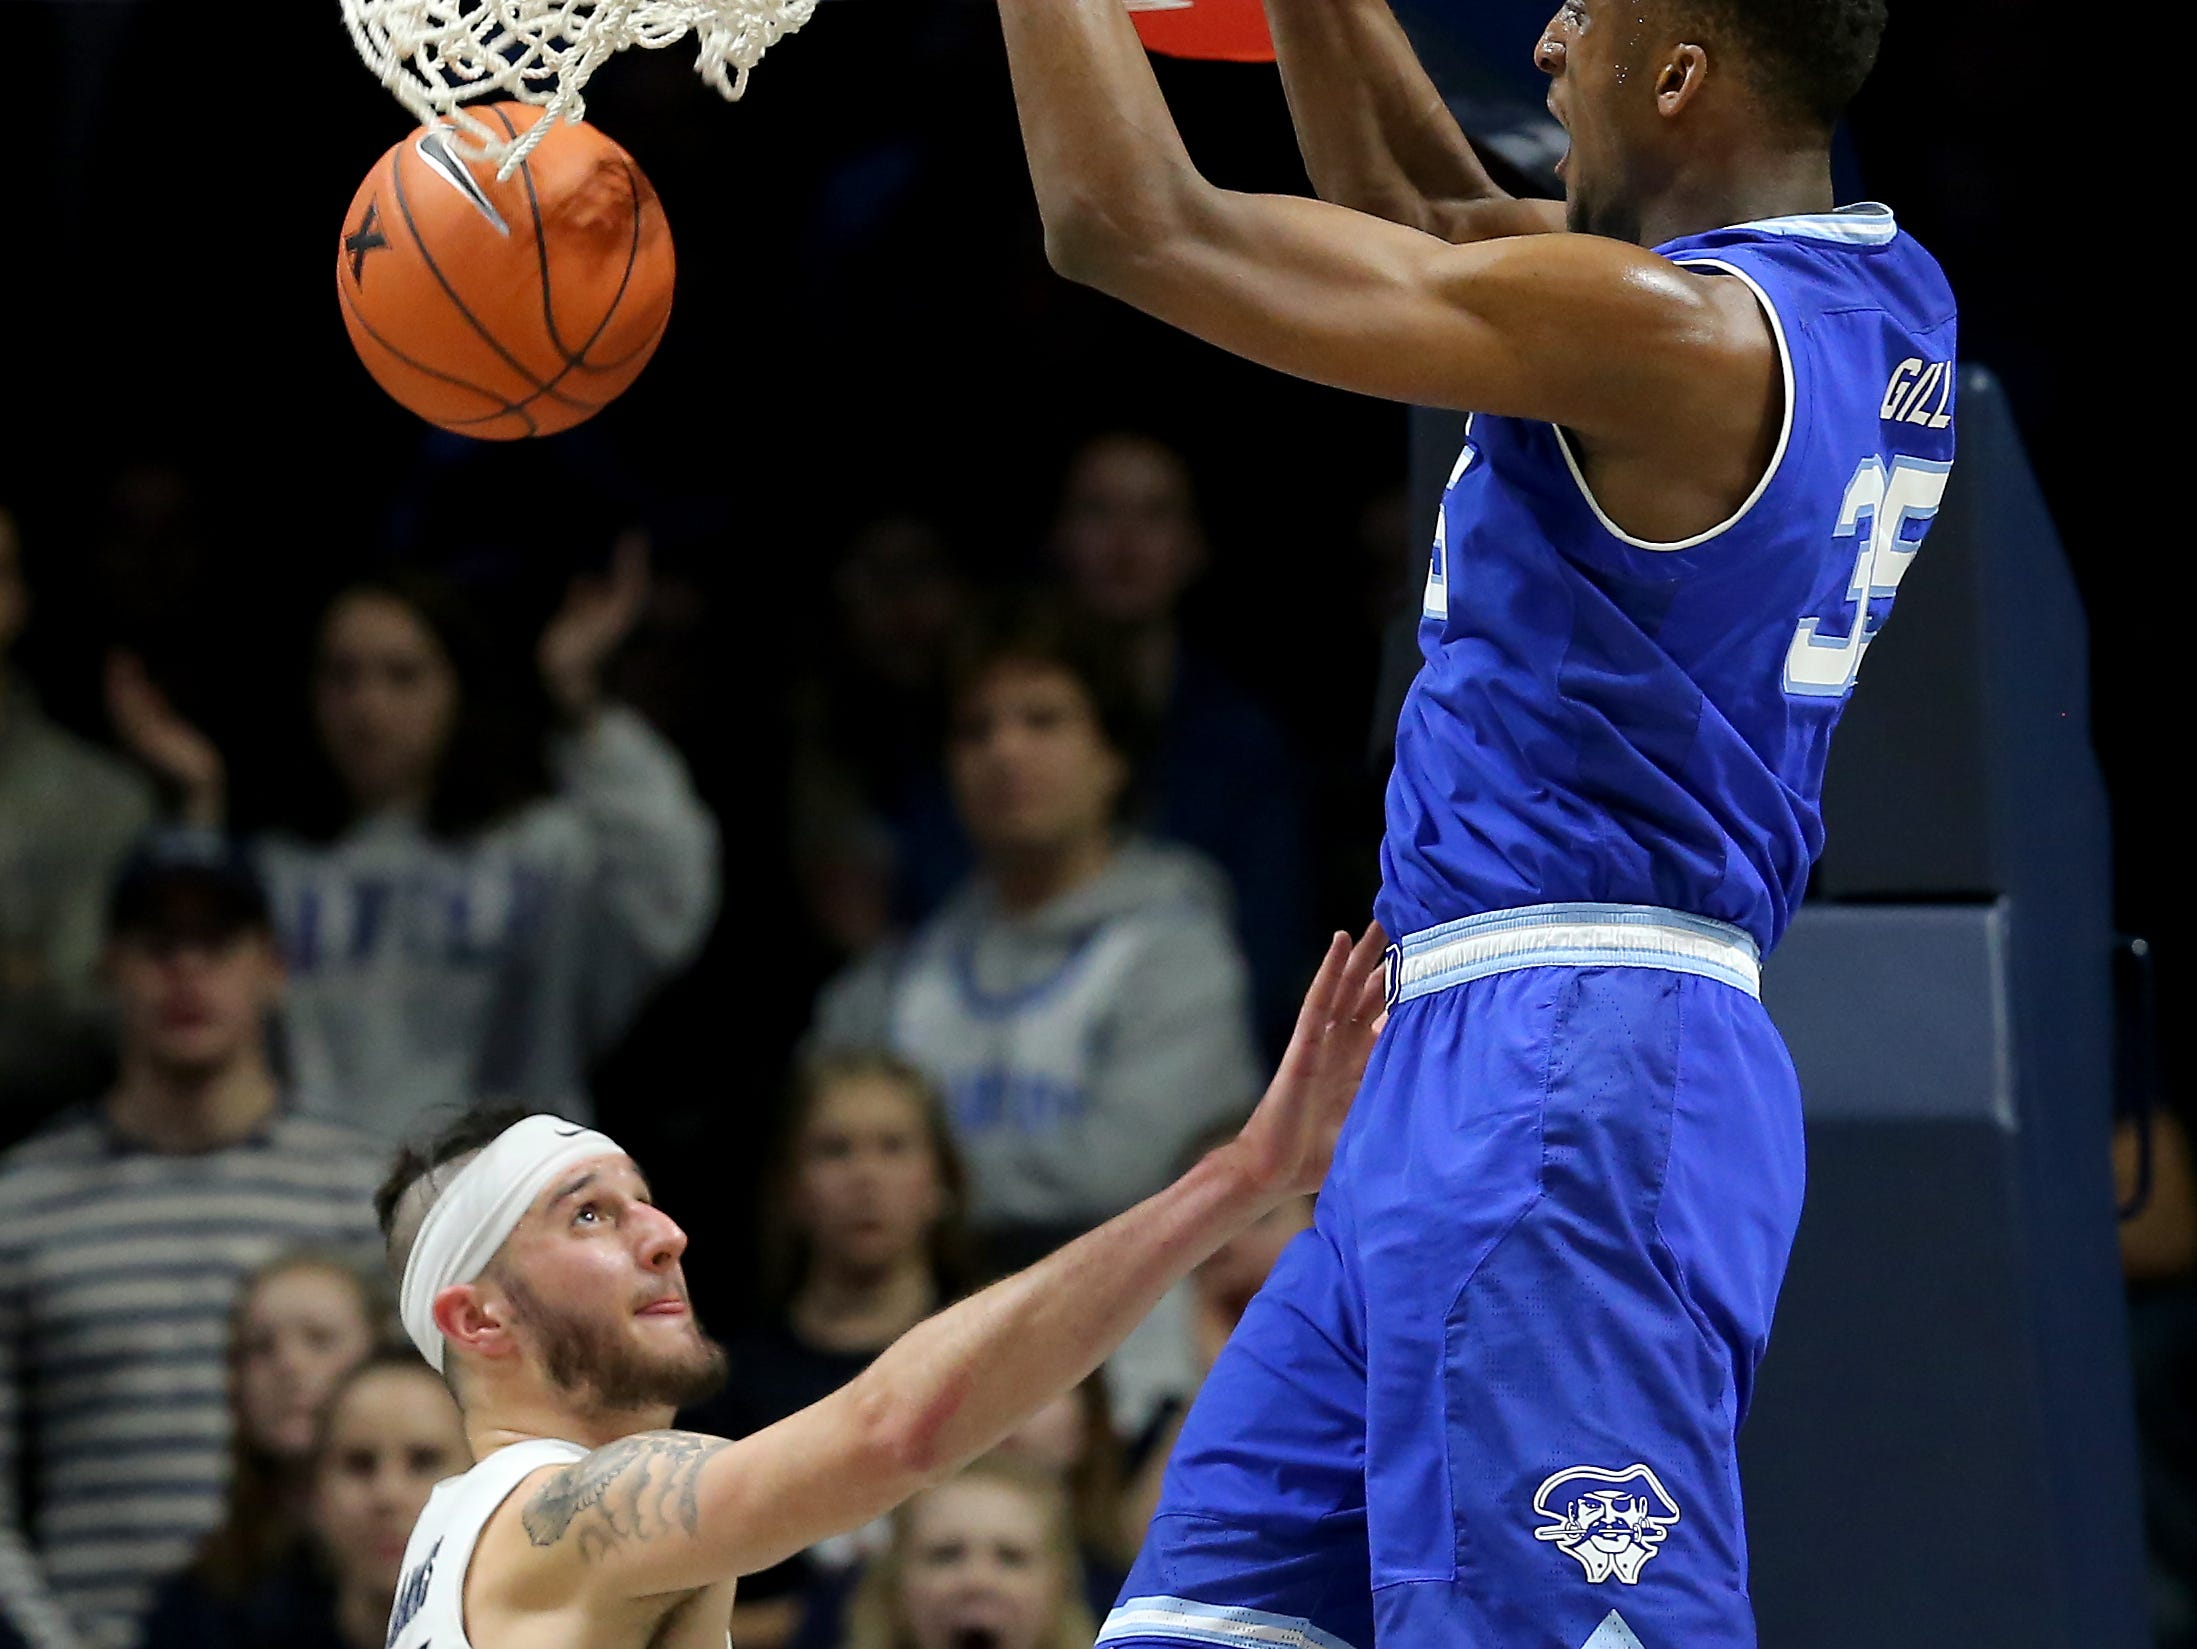 Seton Hall Pirates center Romaro Gill (35) dunks over Xavier Musketeers forward Zach Hankins (35) in the second half of an NCAA college basketball game, Wednesday, Jan. 2, 2019, at the Cintas Center in Cincinnati. Seton Hall won 80-70.